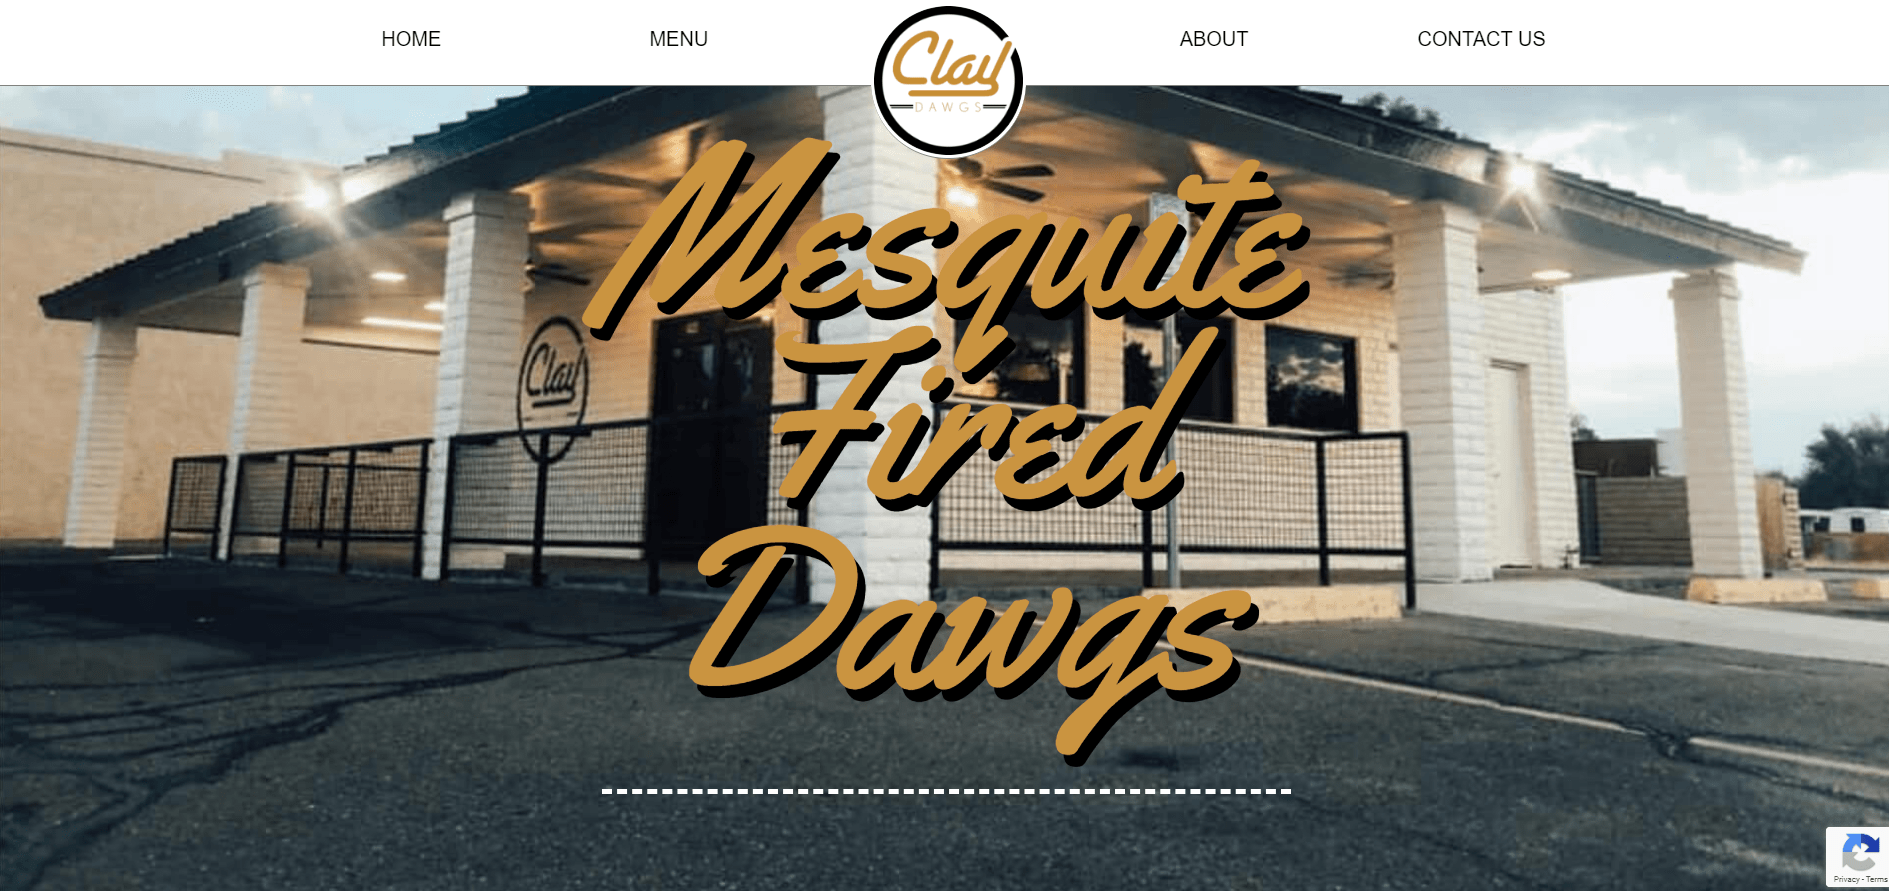 Phoenix Website Designers Launch Clay Dawgs